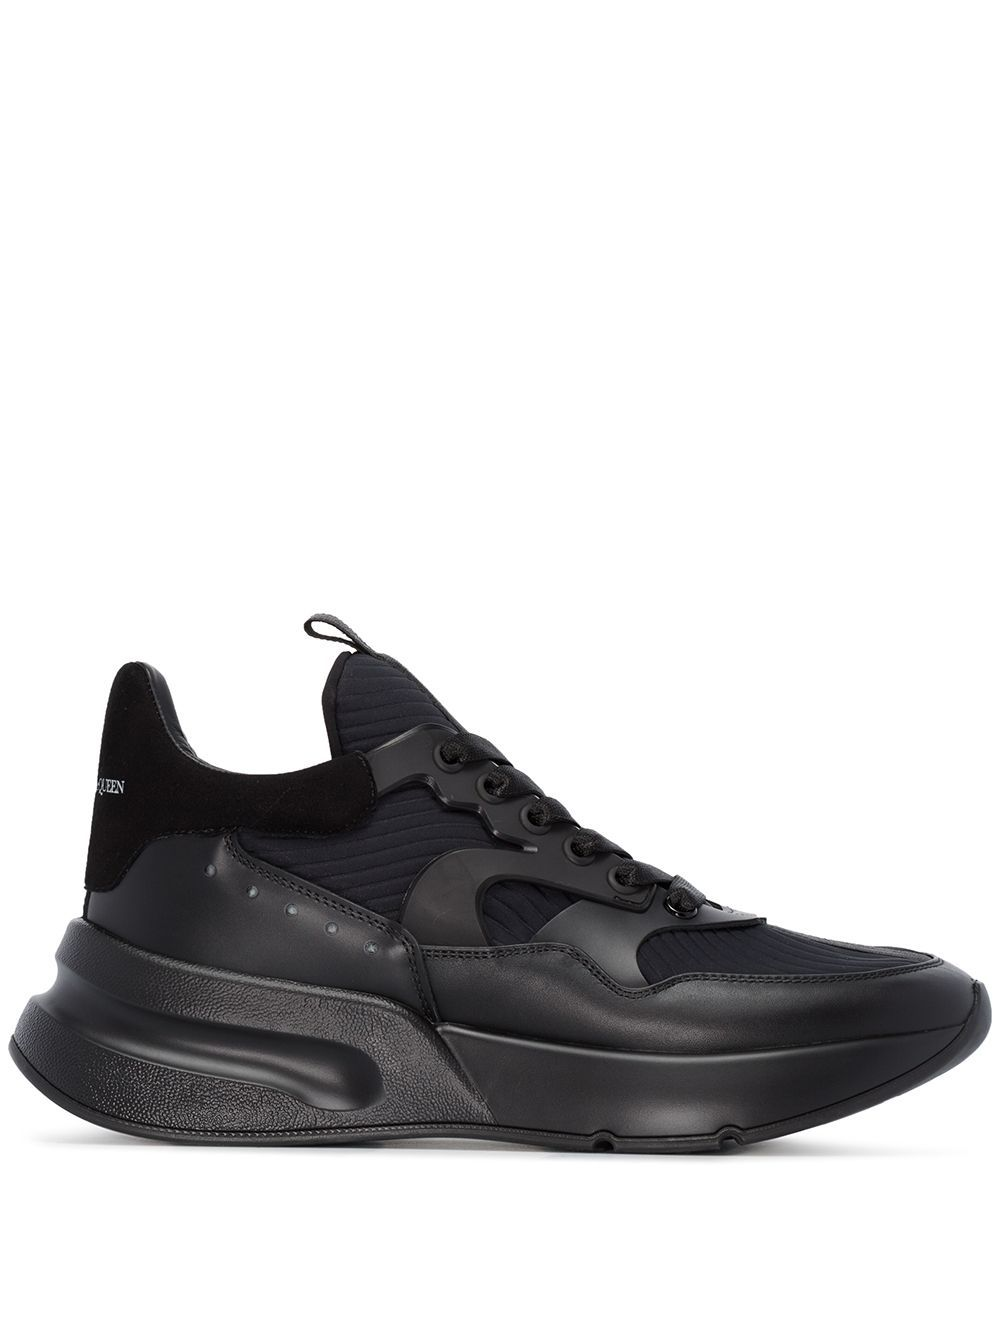 ALEXANDER MCQUEEN Oversized Runner Low Top sneakers Black